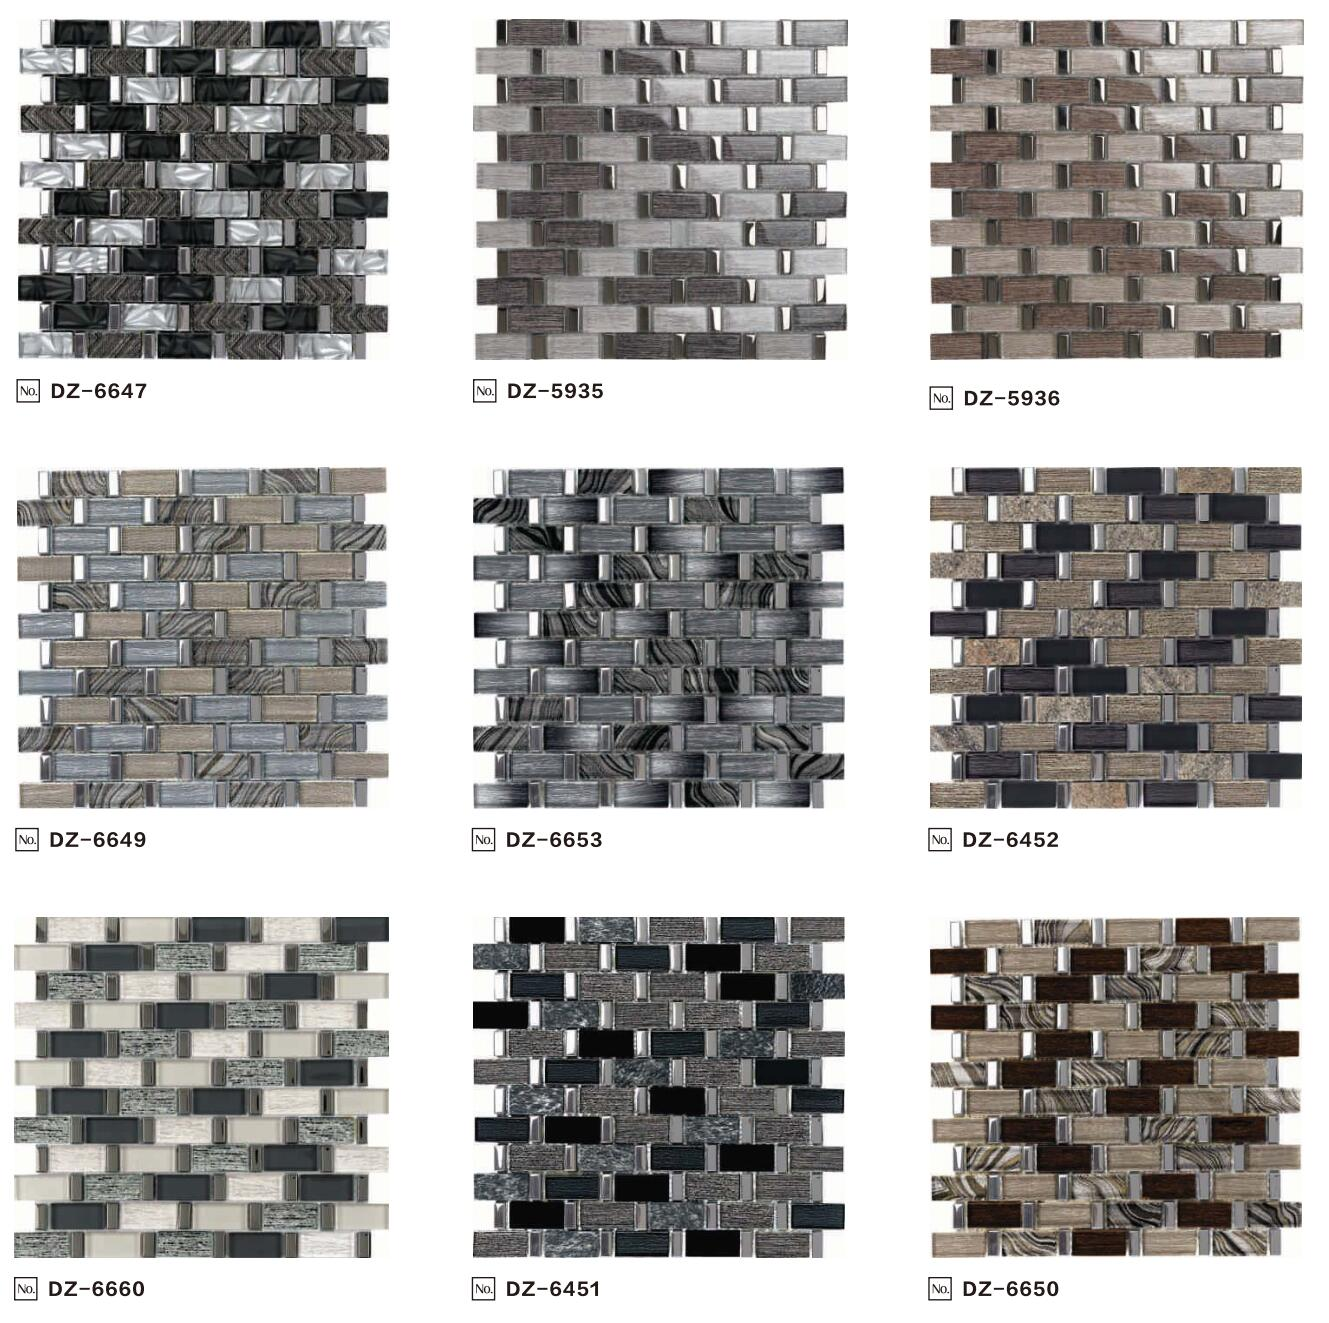 Super maket Top Selling Laminated Glass Mosaic tile Grey Mosaic for bathroom and kitchen Foshan China